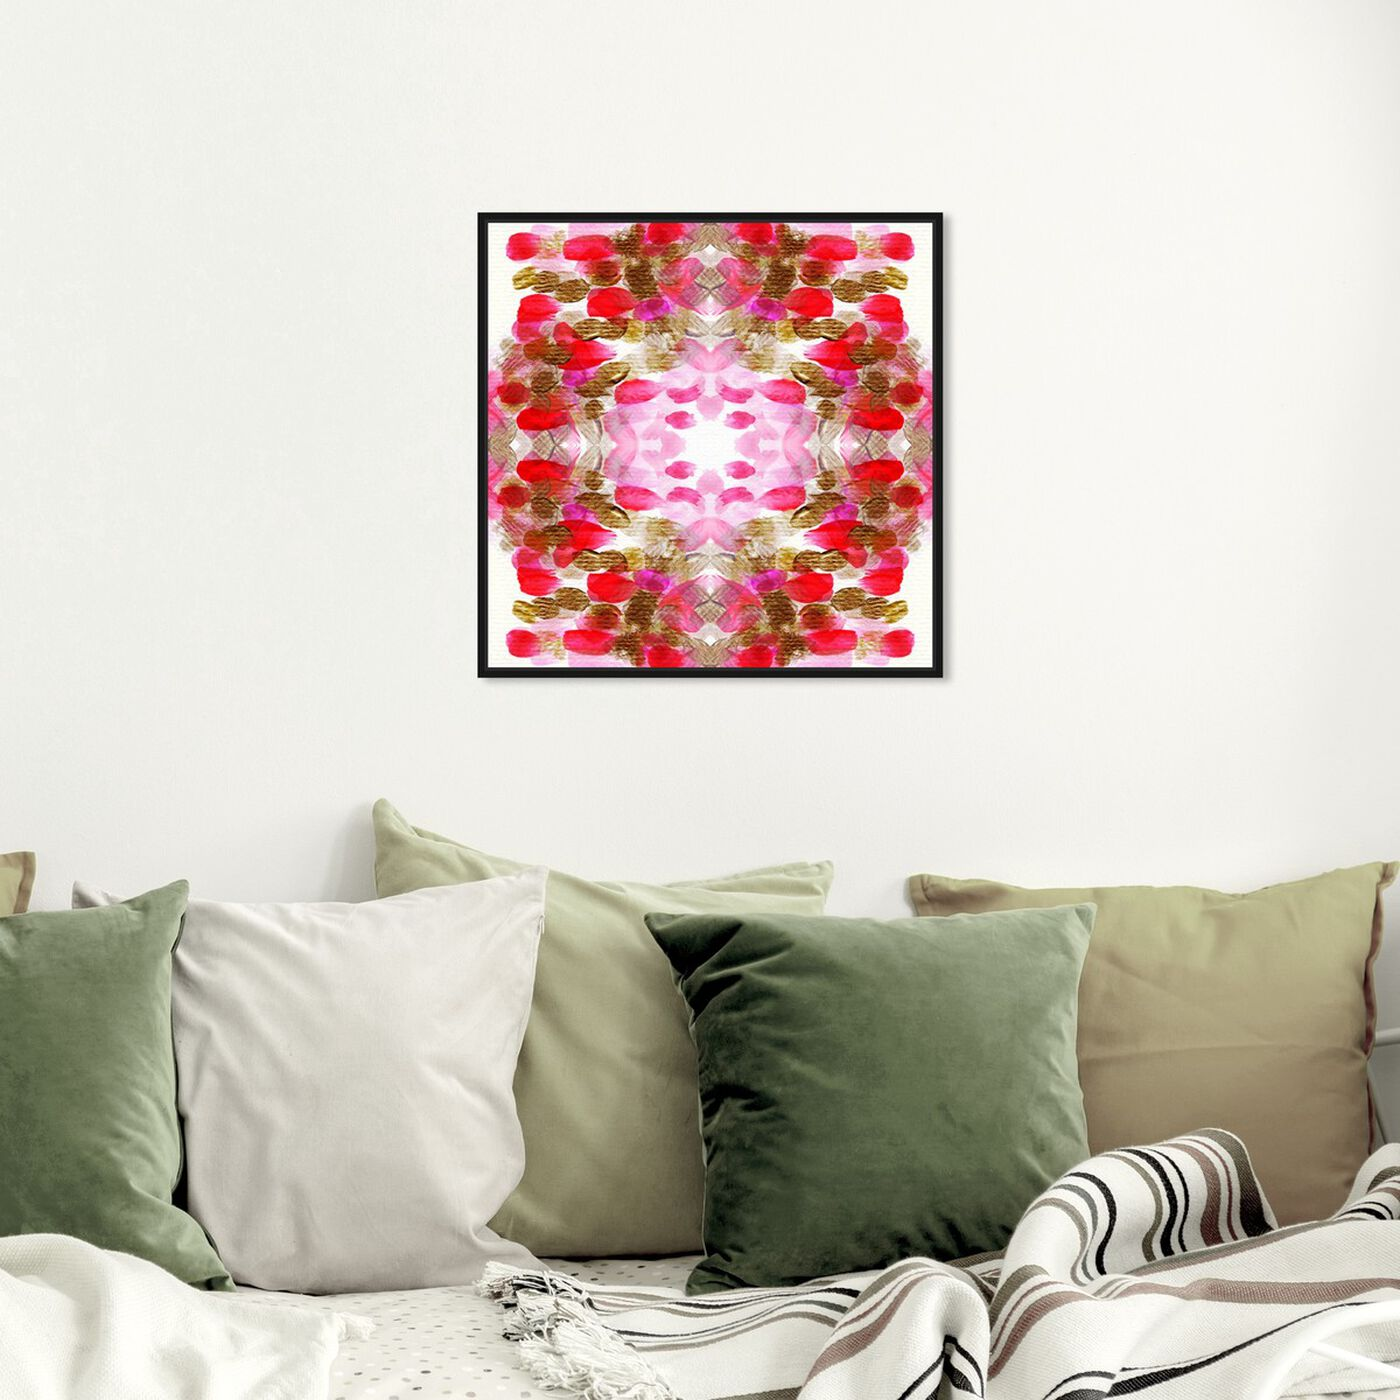 Hanging view of Pomegranate  featuring abstract and paint art.